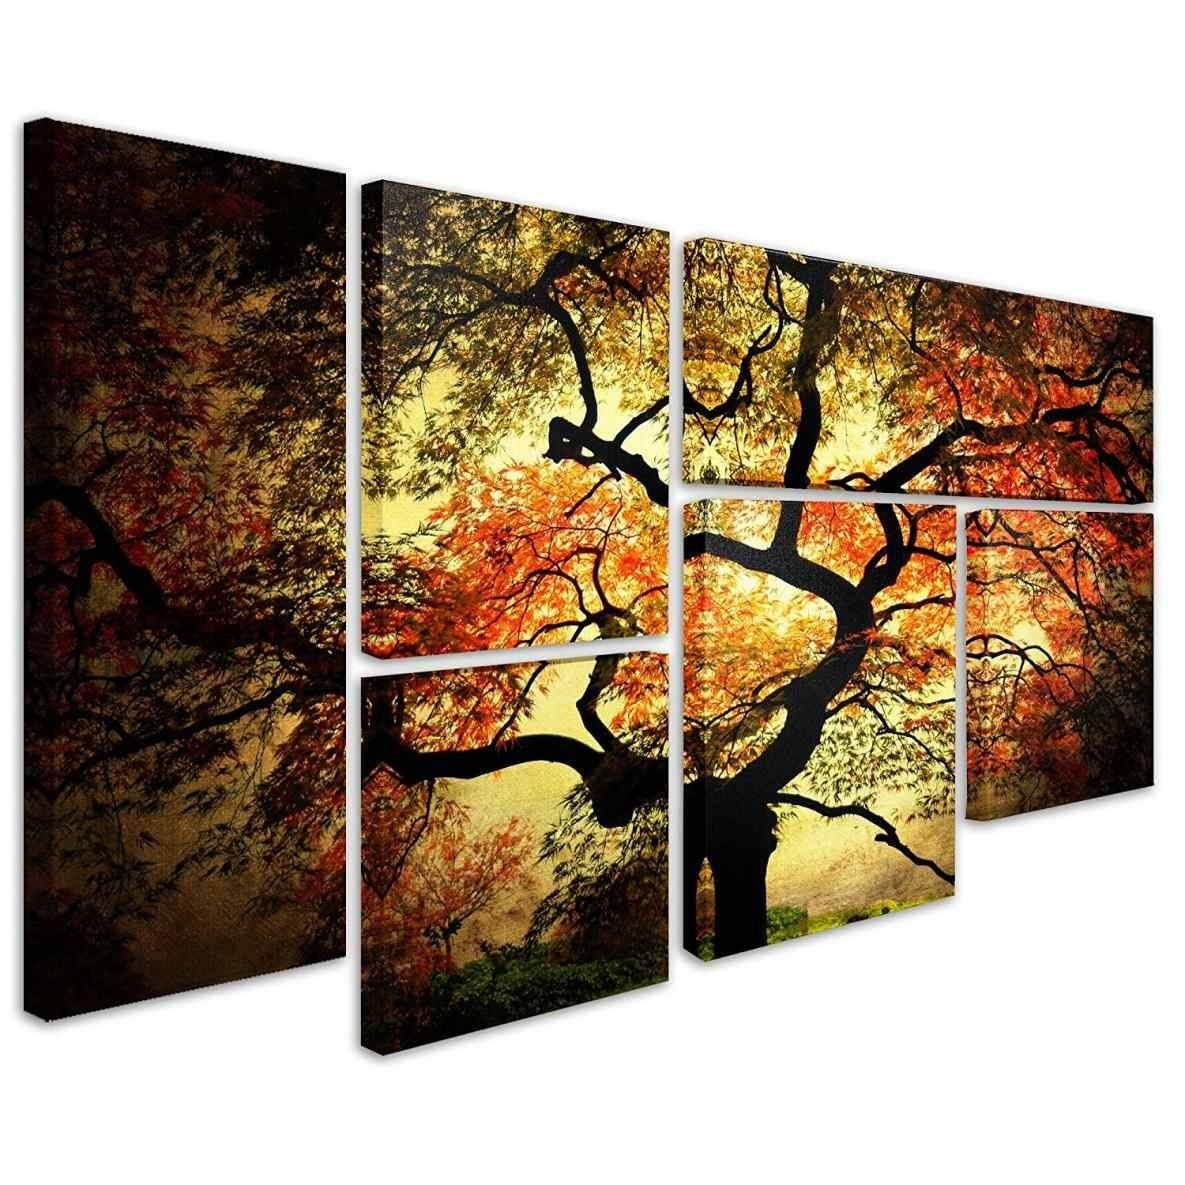 Birds Perchedflowers Set Wall Multiple Piece Canvas Wall Art Inside Most Popular Multiple Panel Wall Art (View 8 of 20)